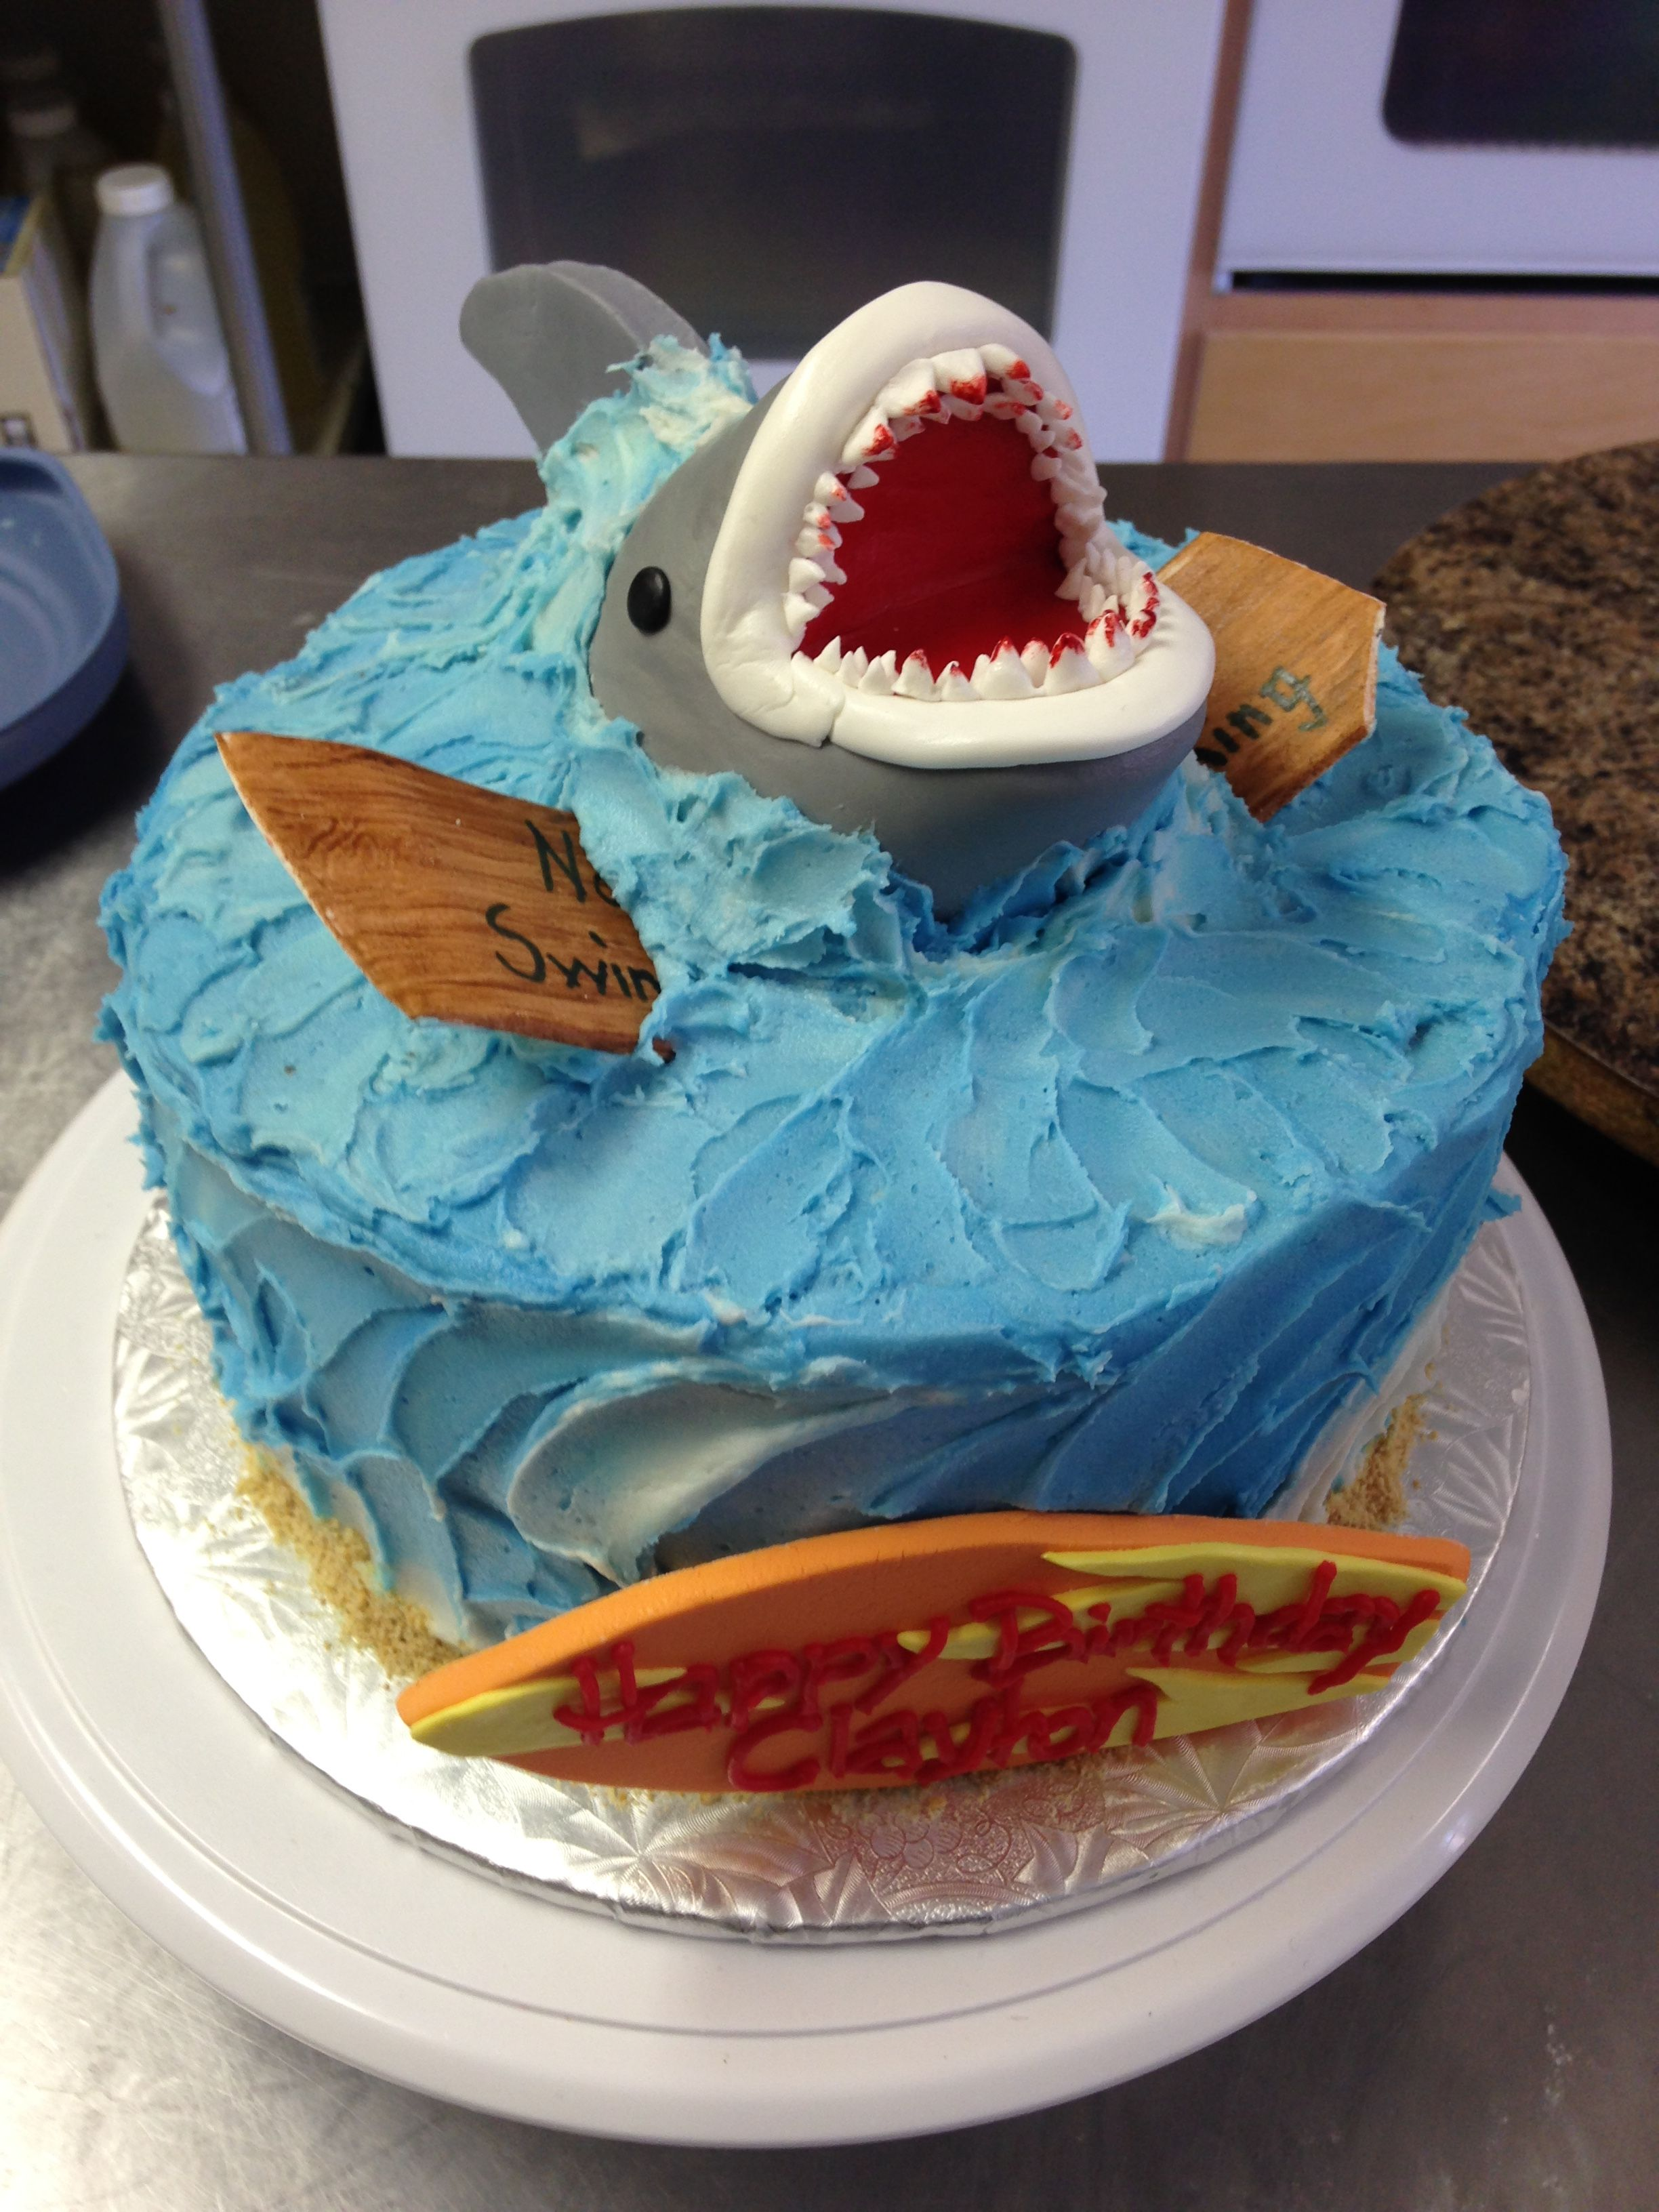 Go Swimming With The Sharks With This Jaws Themed Birthday Cake